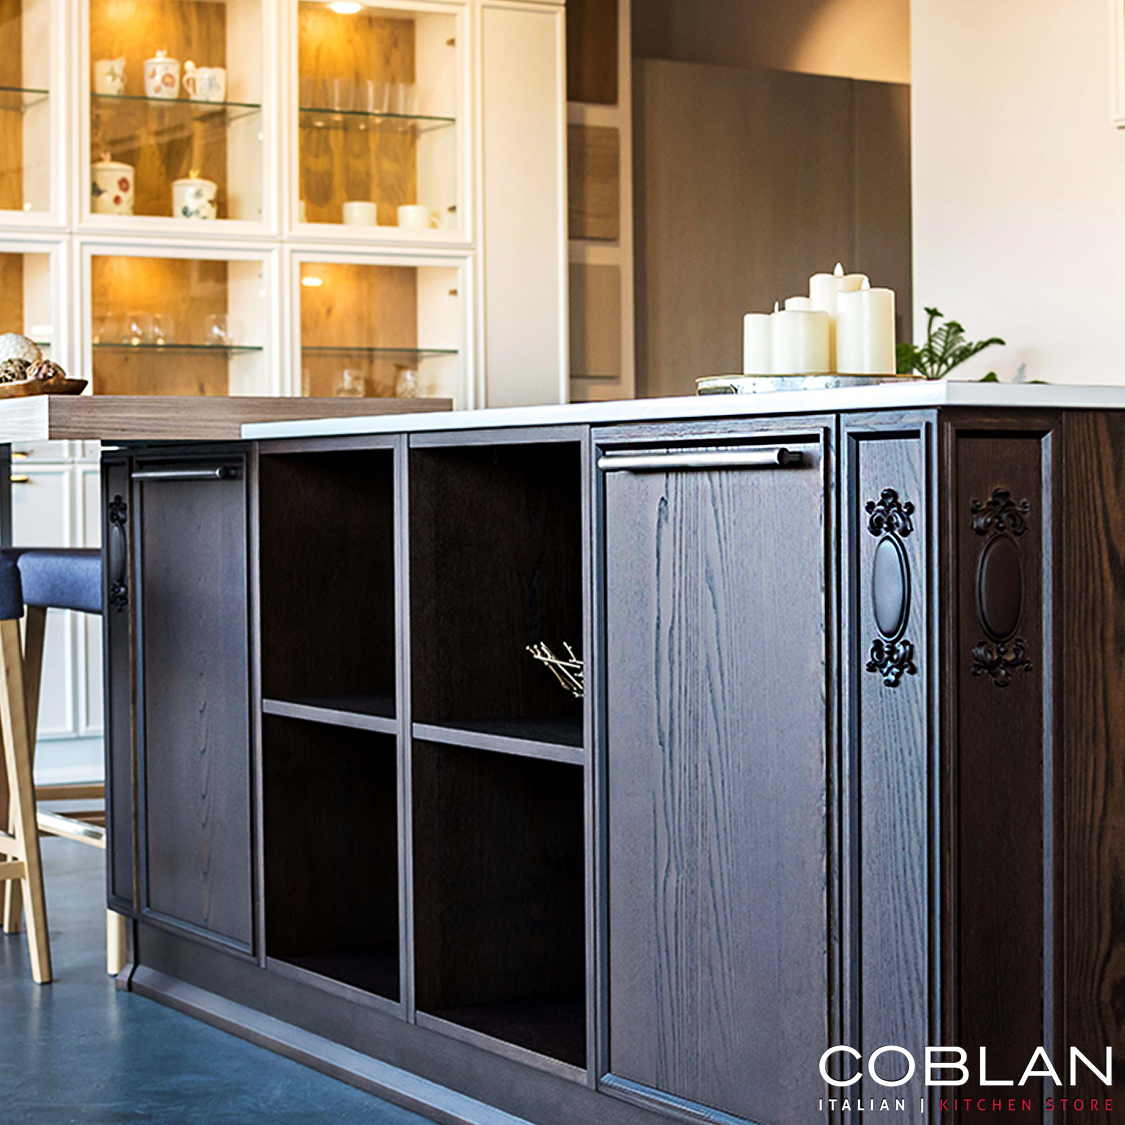 kitchen trends change kitchen color schemes come and go